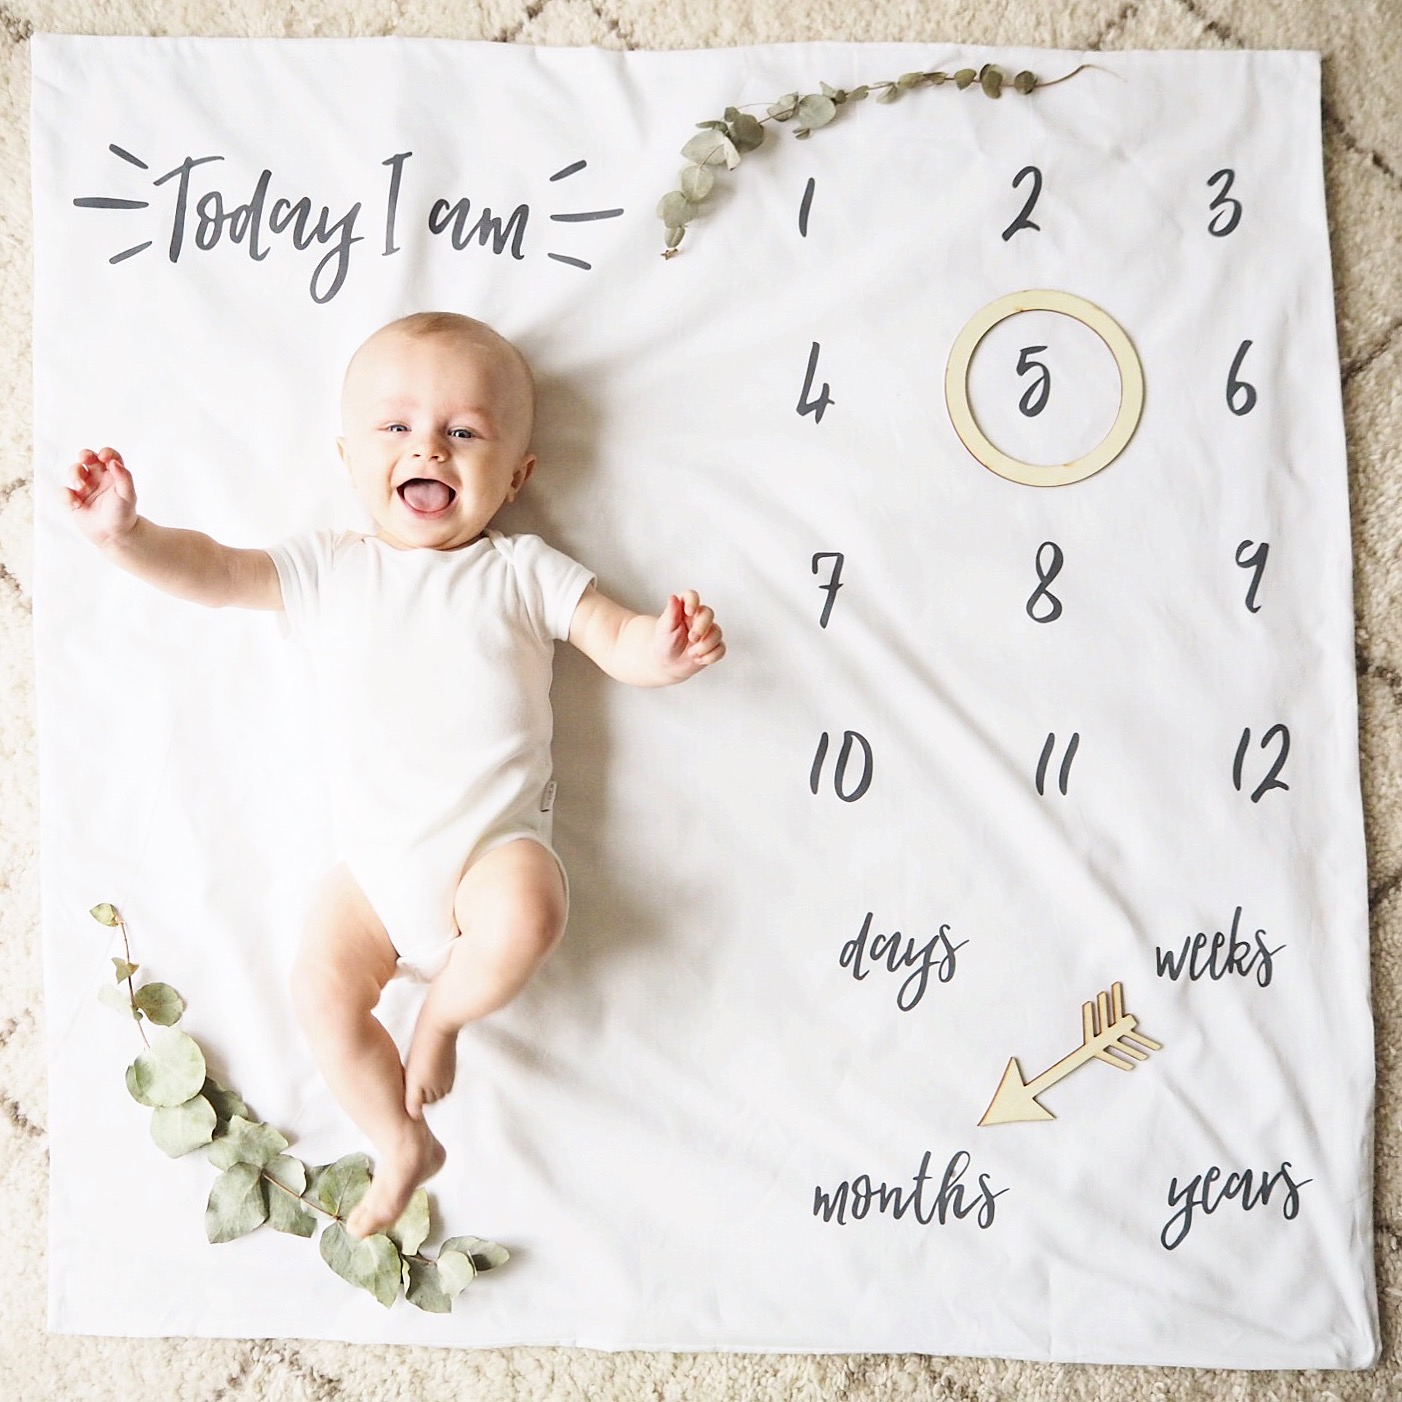 Baby boy is five months old baby diaries baby updates baby milestones